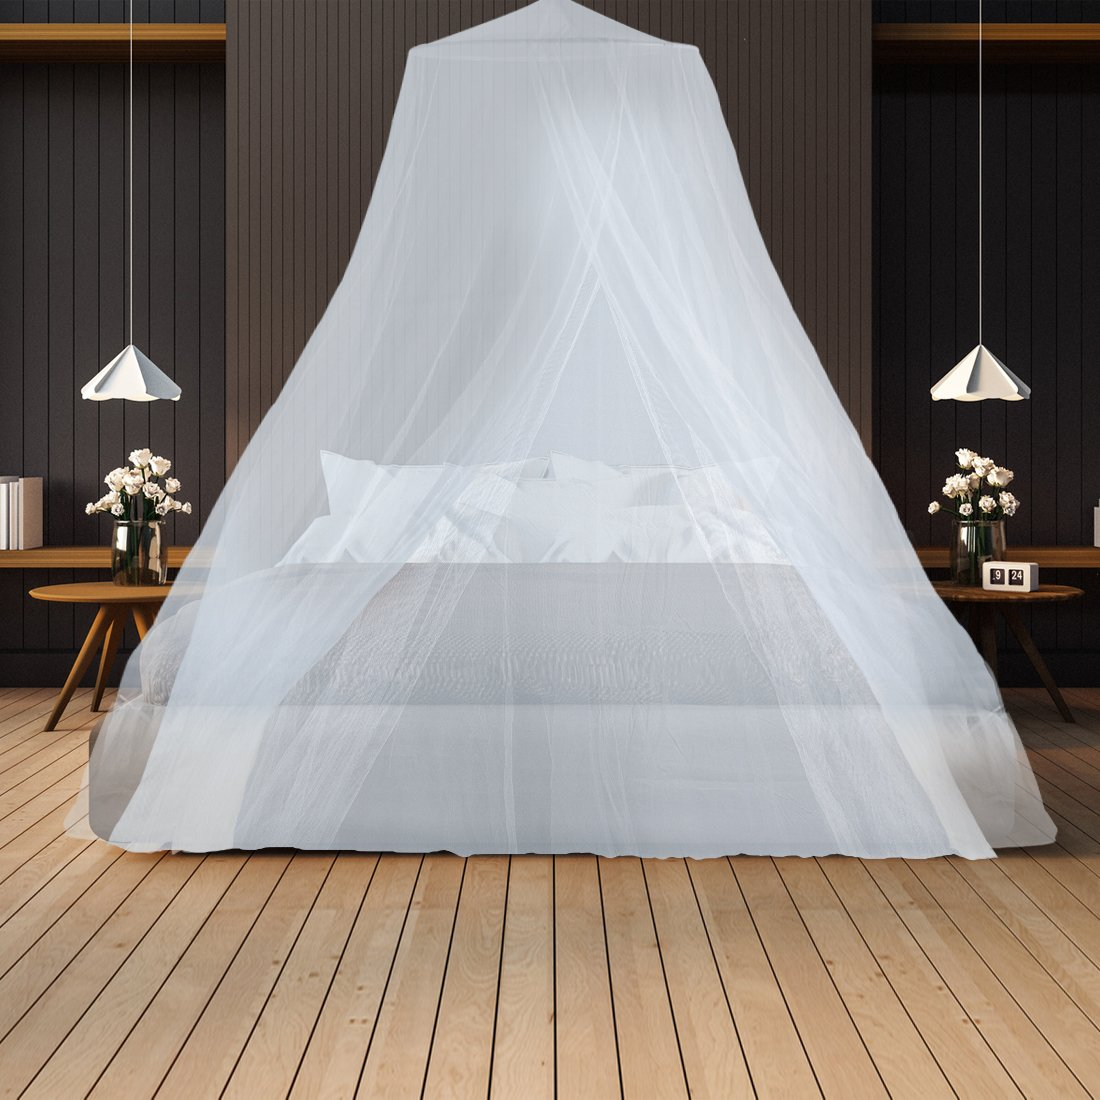 Mosquito Netting– Keeps Away Insects & Flies – Perfect For Indoors And Outdoors, Playgrounds, Fits Most Size Beds, Cribs - Conical Design, Including Hanging Parts and a FREE Carry Bag To Carry Along